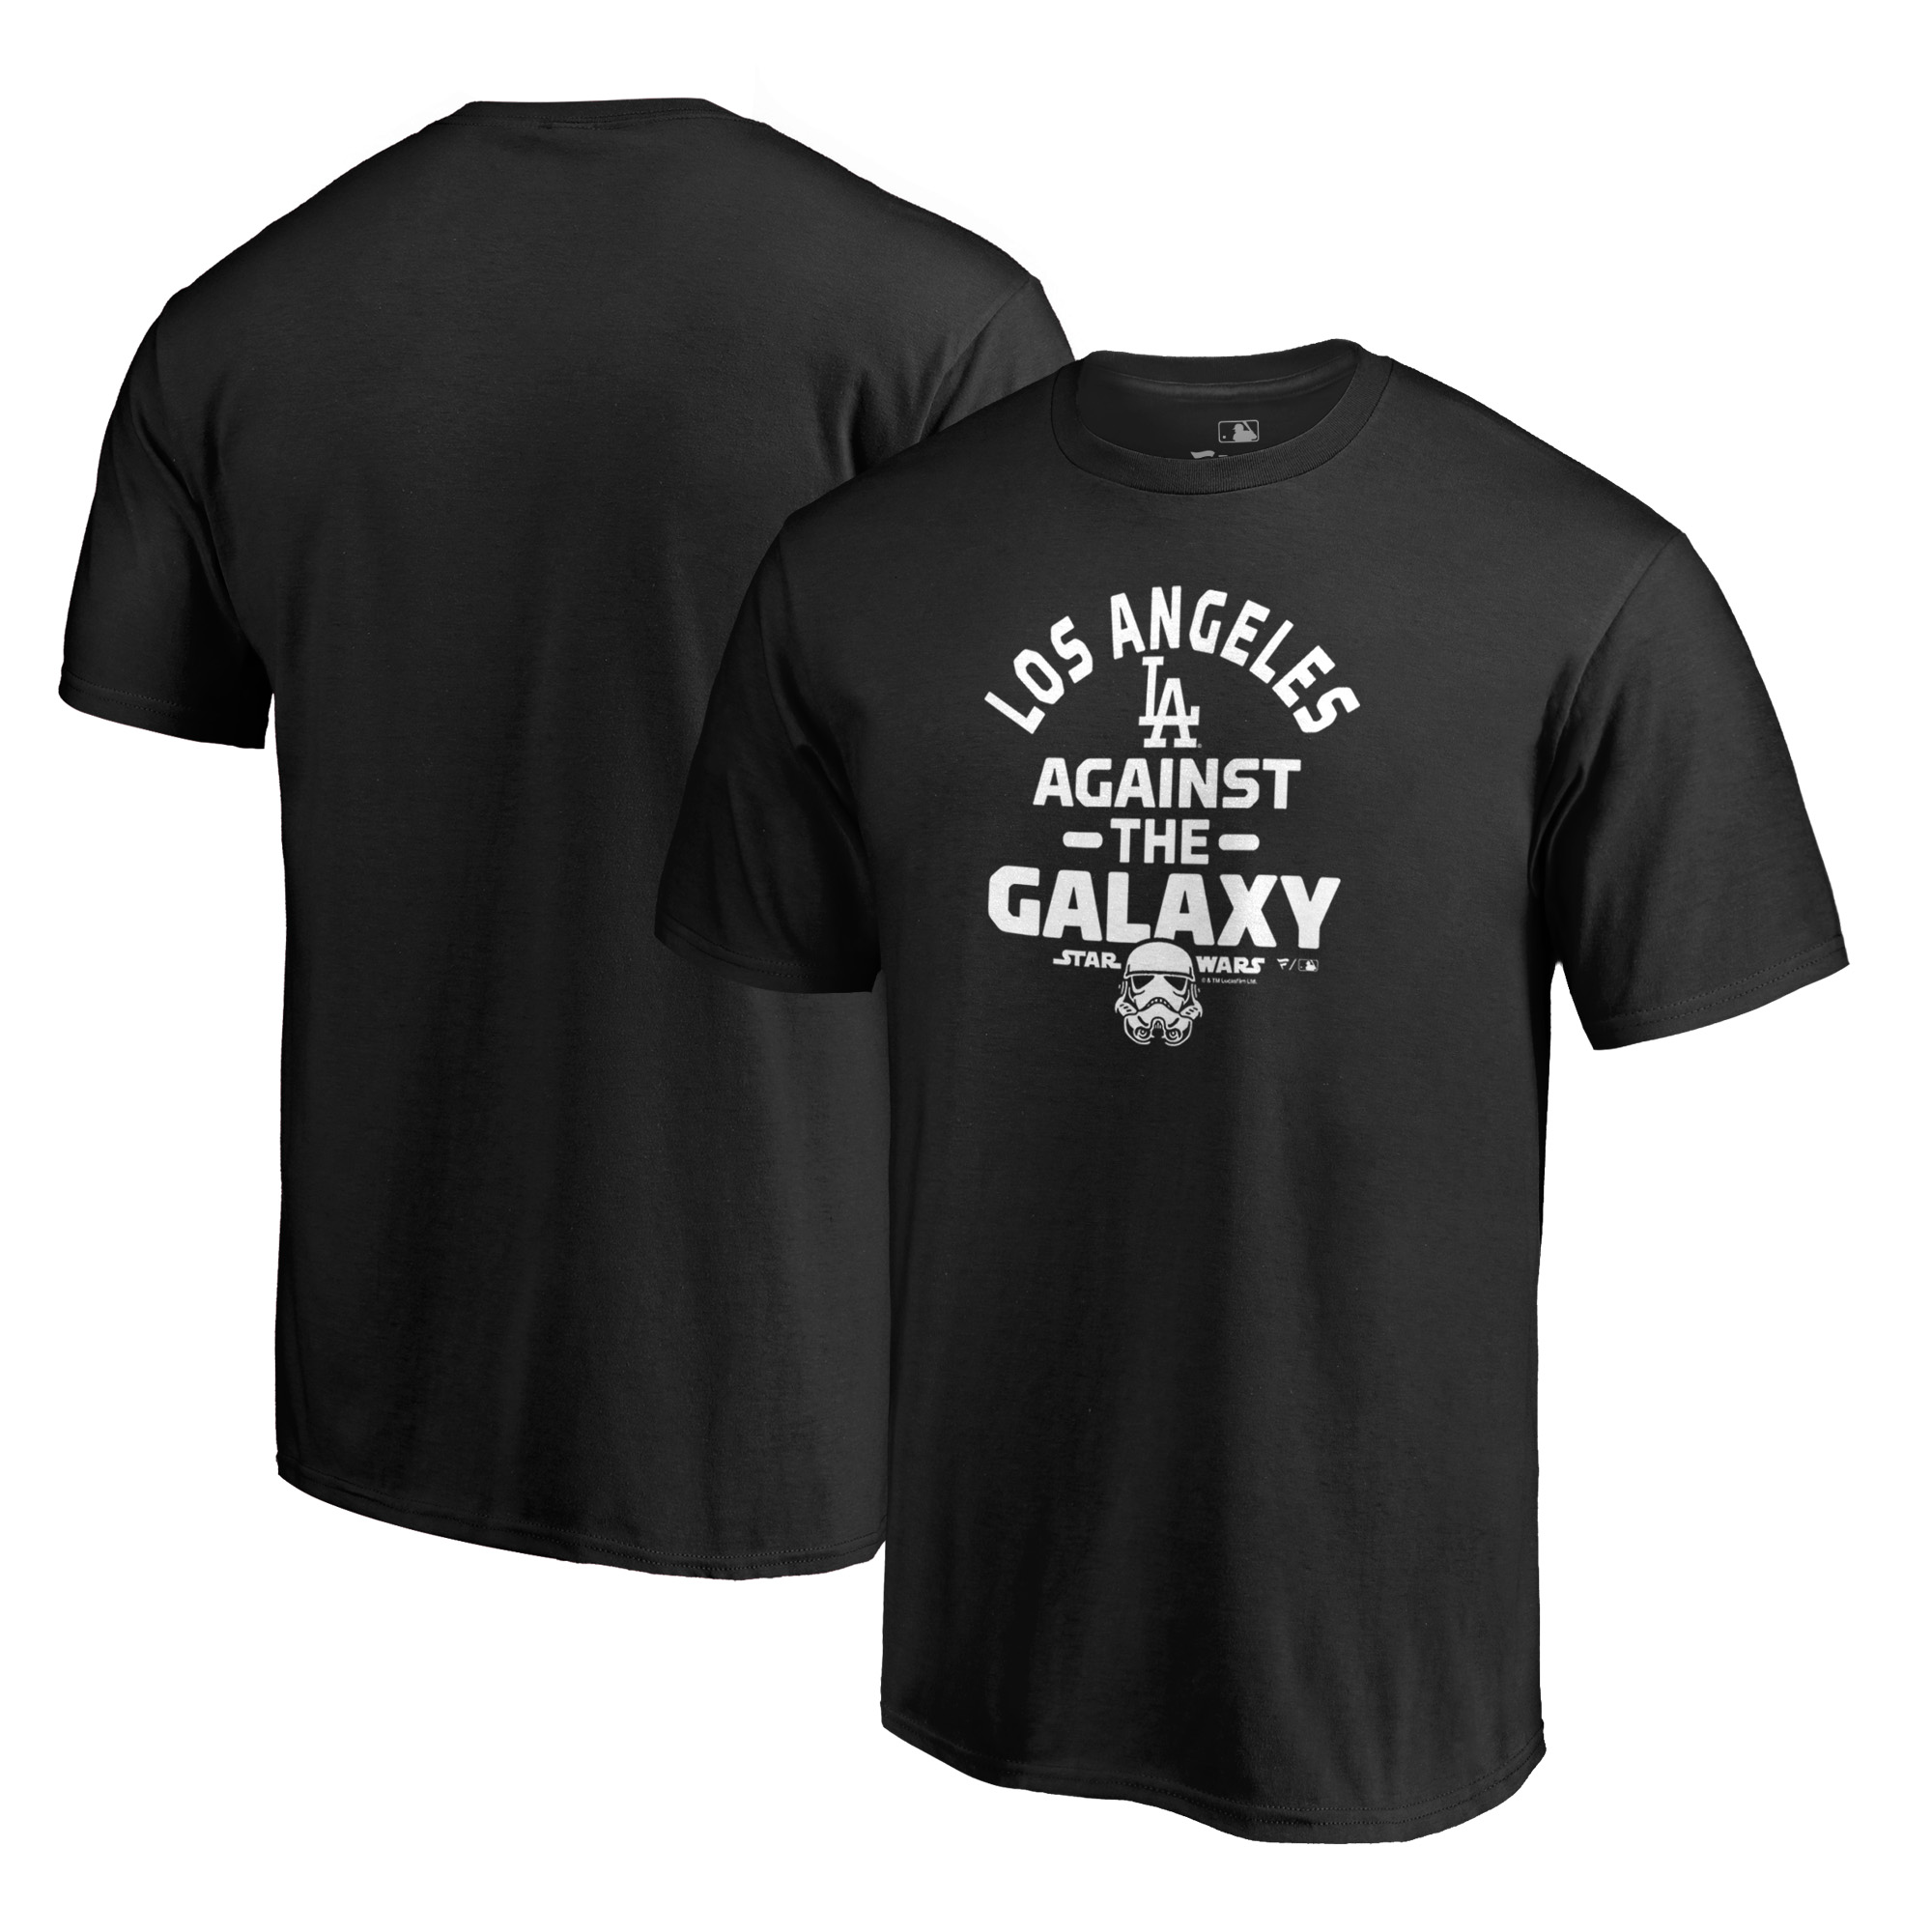 Los Angeles Dodgers Fanatics Branded MLB Star Wars Against The Galaxy T-Shirt - Black